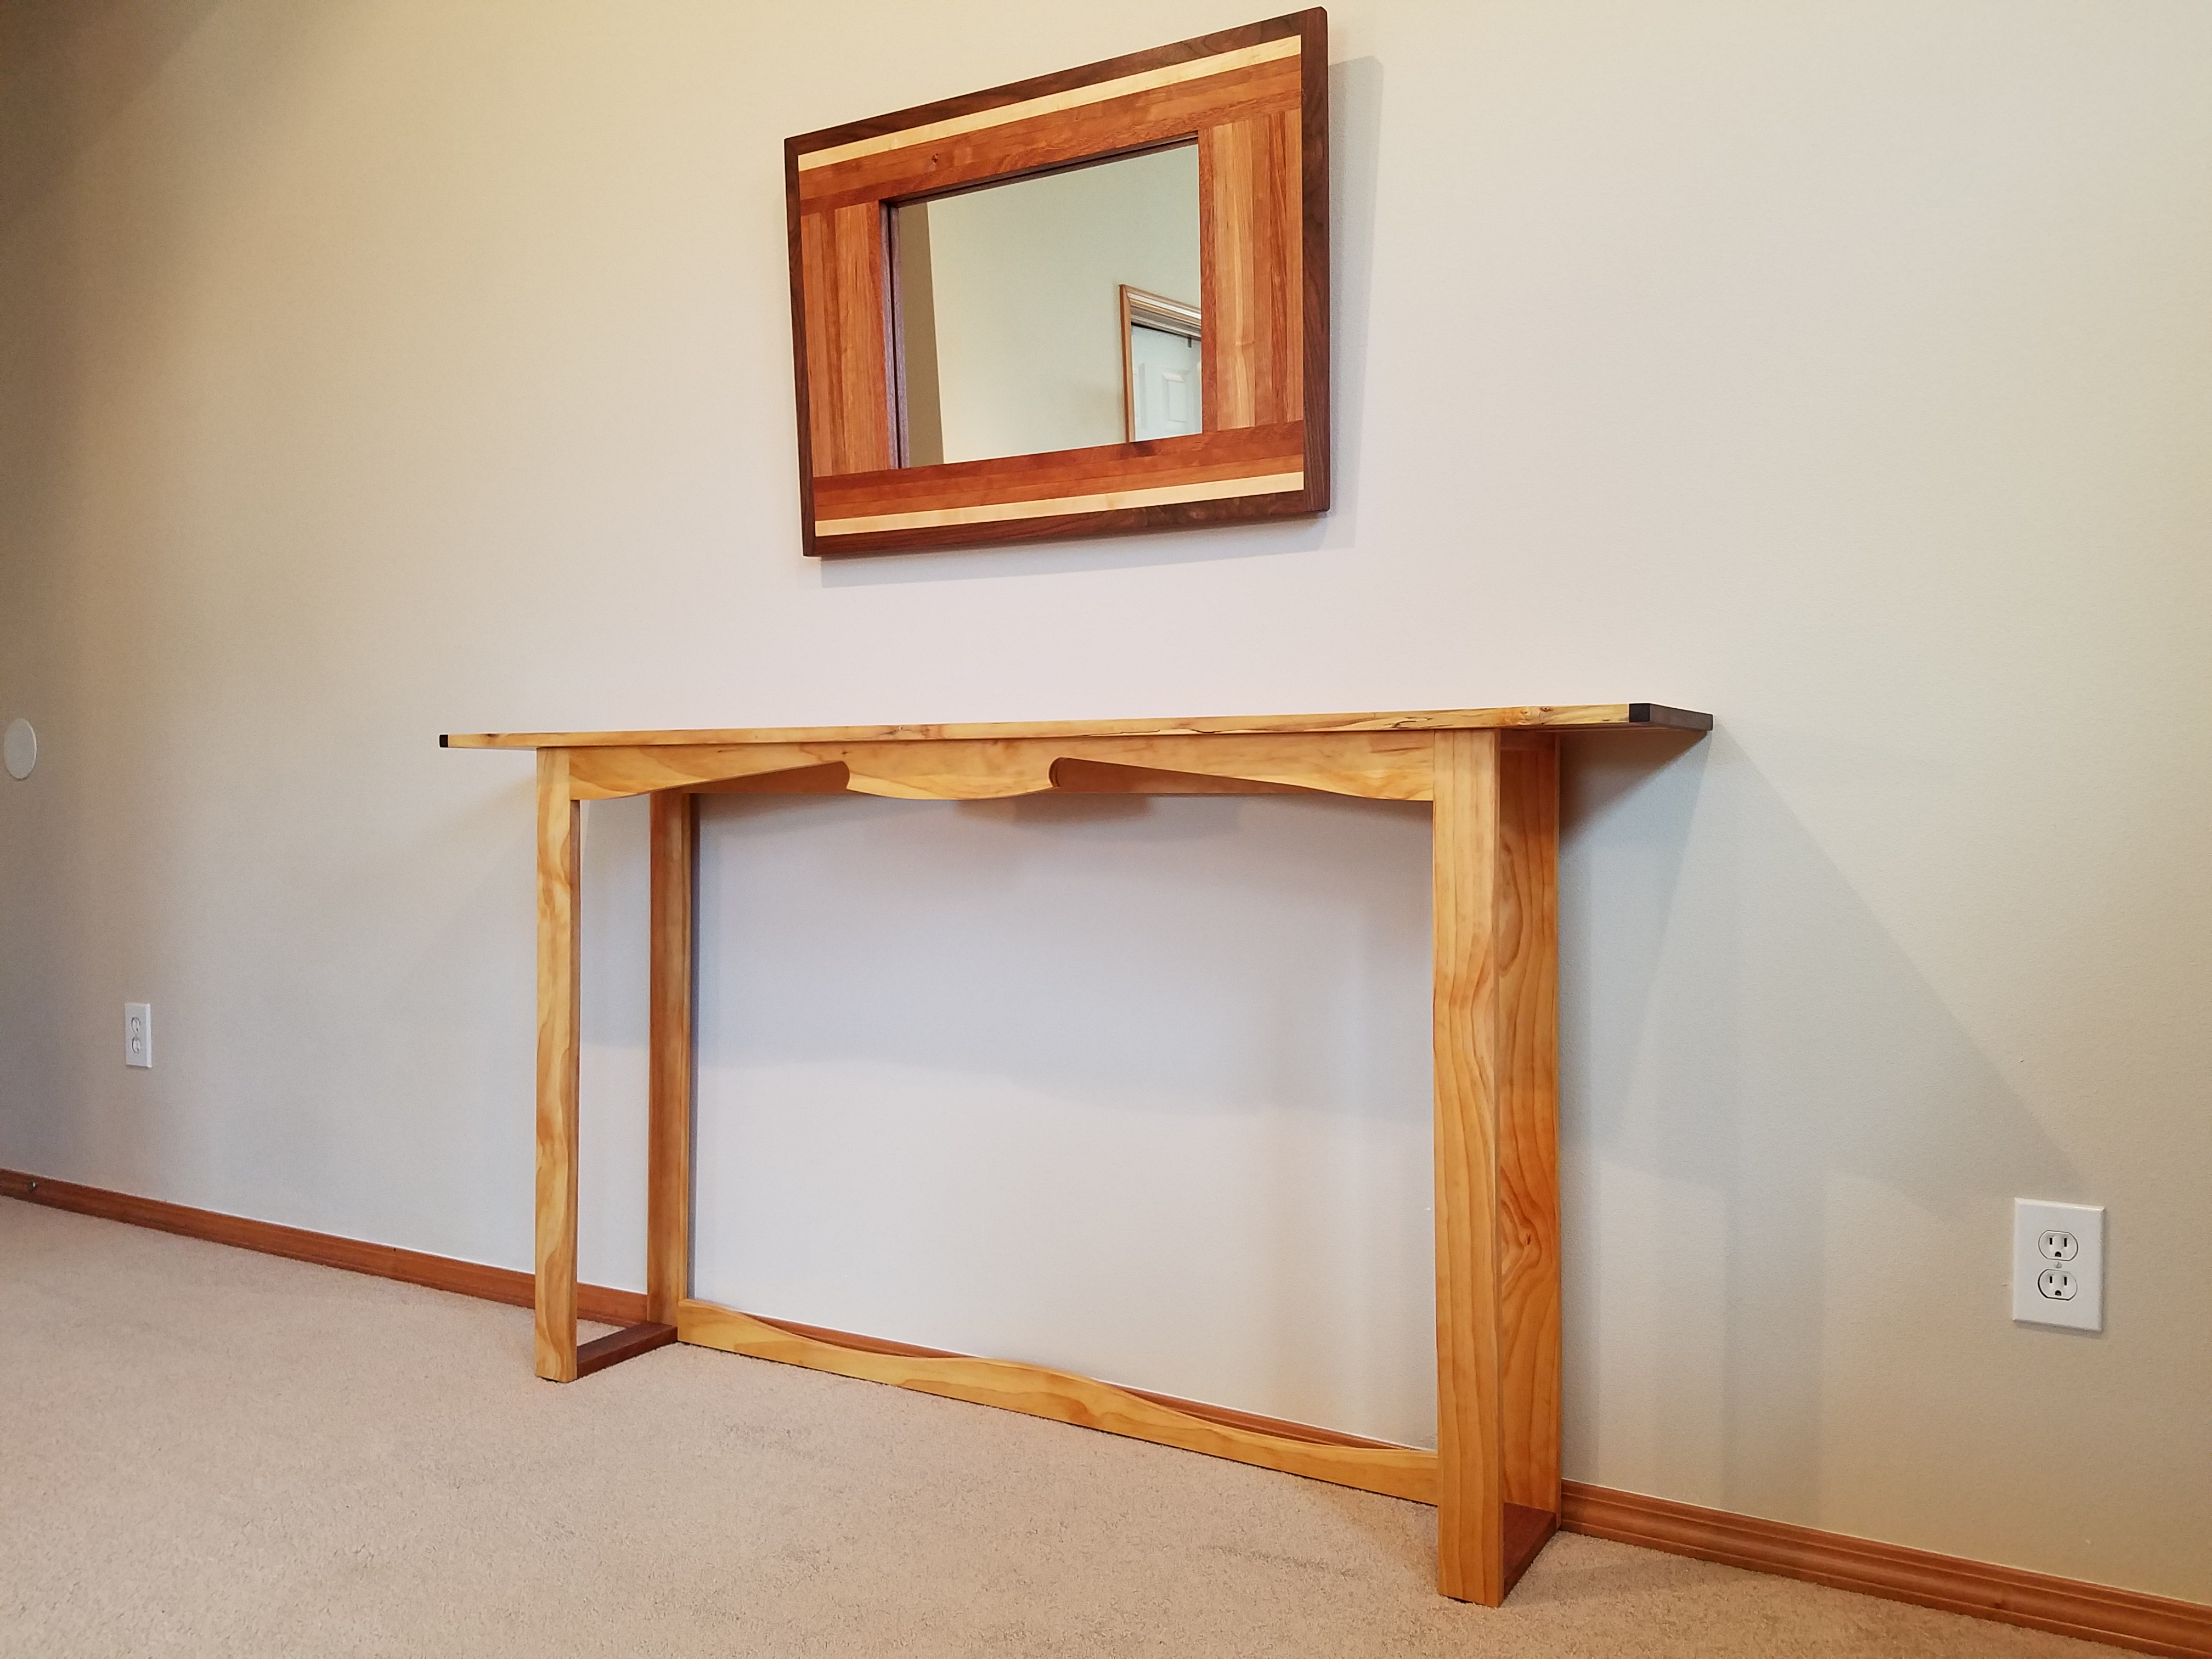 Wood Console Table With A Live Edge And Mirror — Handmade Natural Intended For Natural Wood Mirrored Media Console Tables (View 19 of 20)